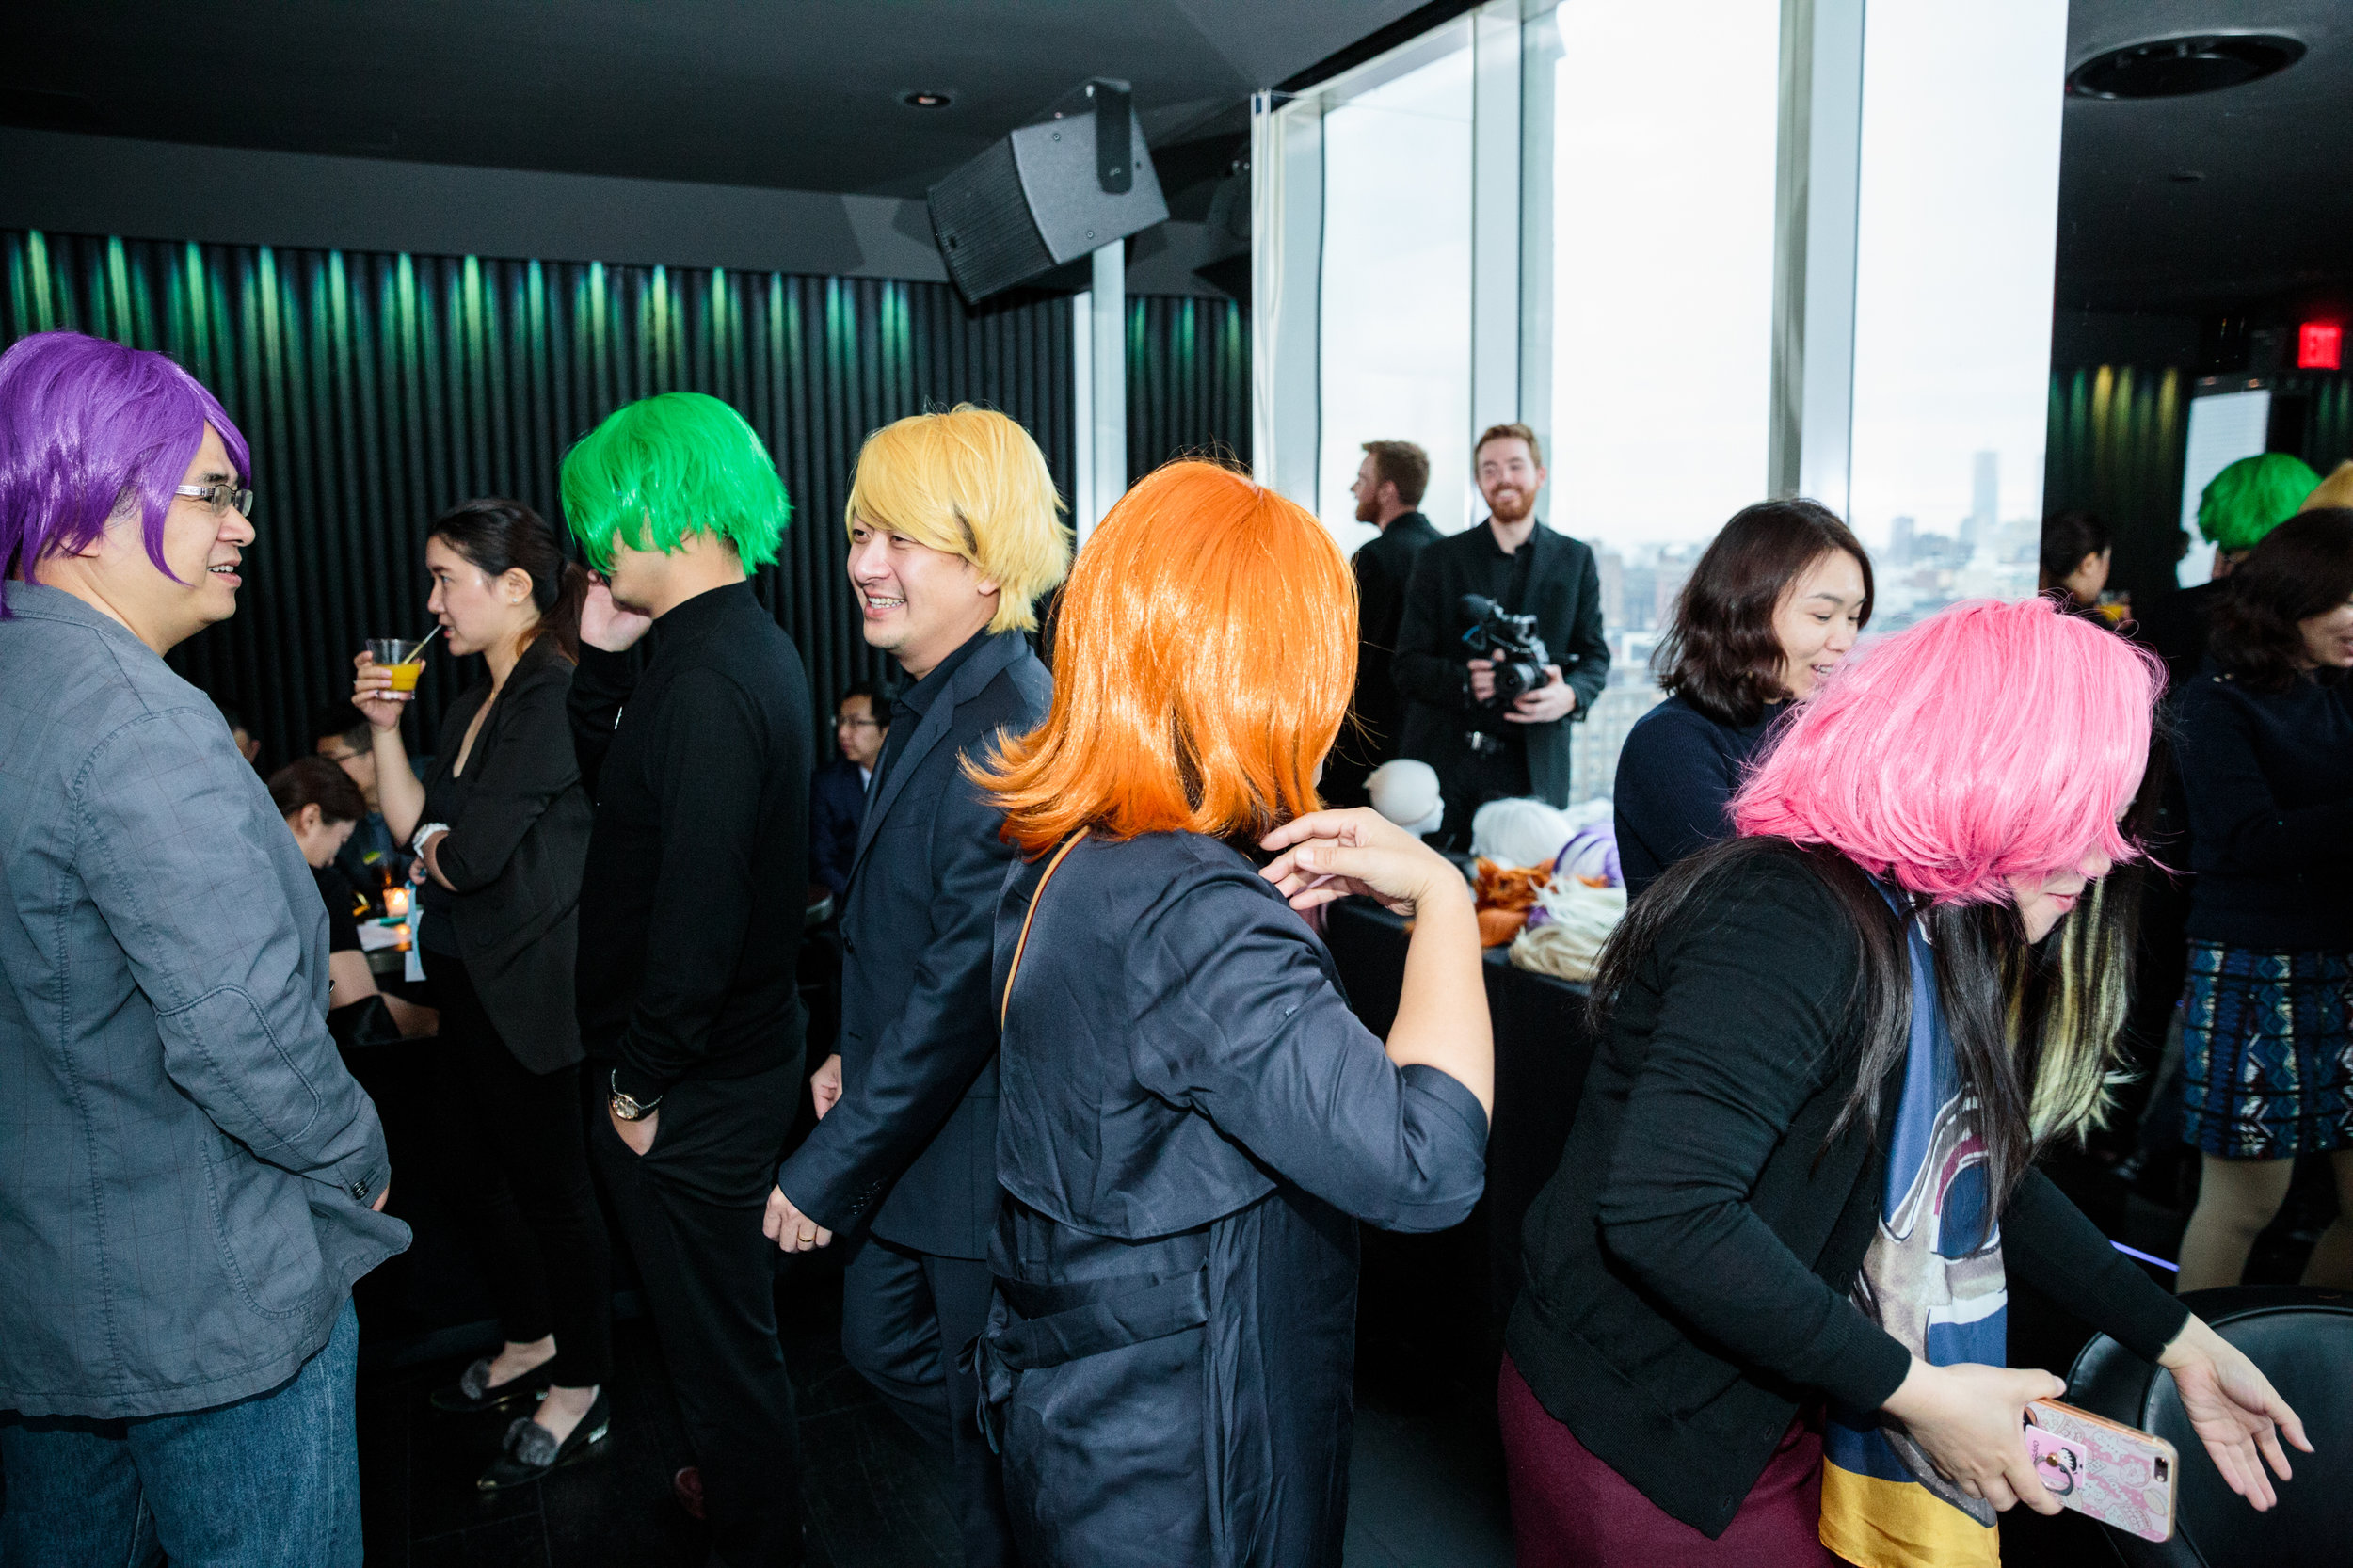 Guests sporting neon wigs as they mingle